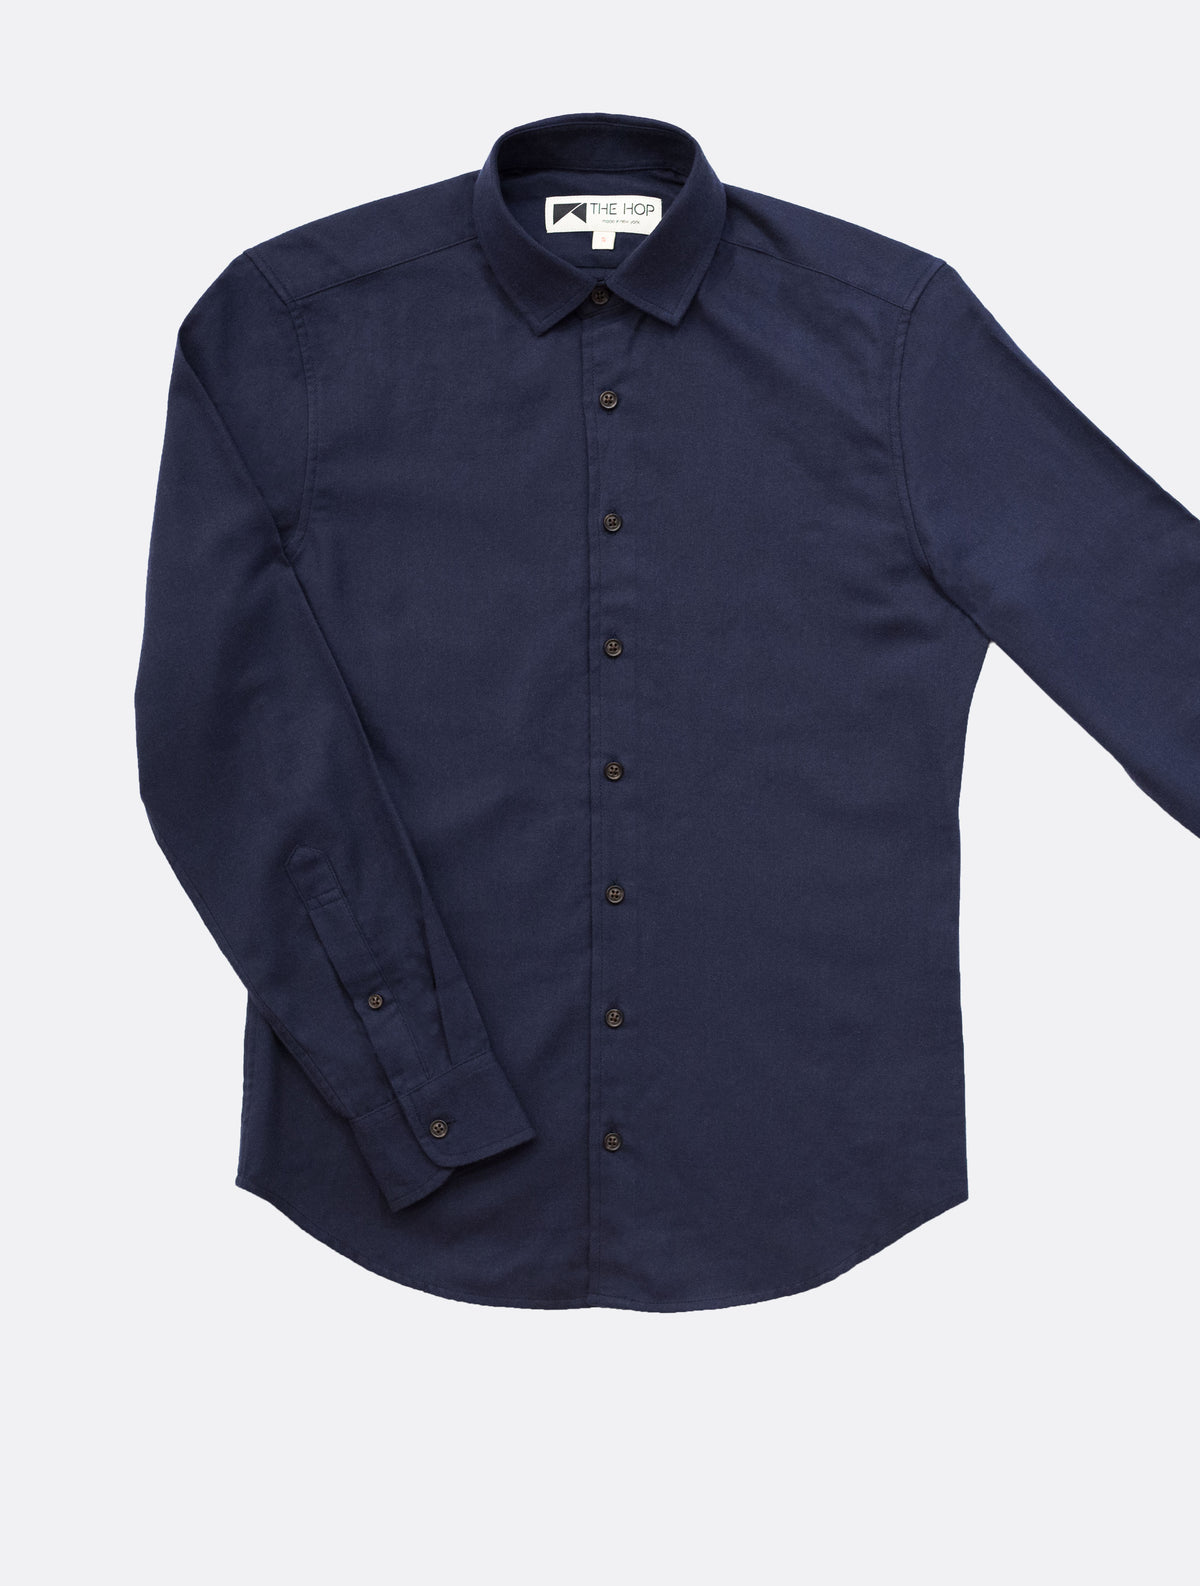 Wool Brautigan in Navy